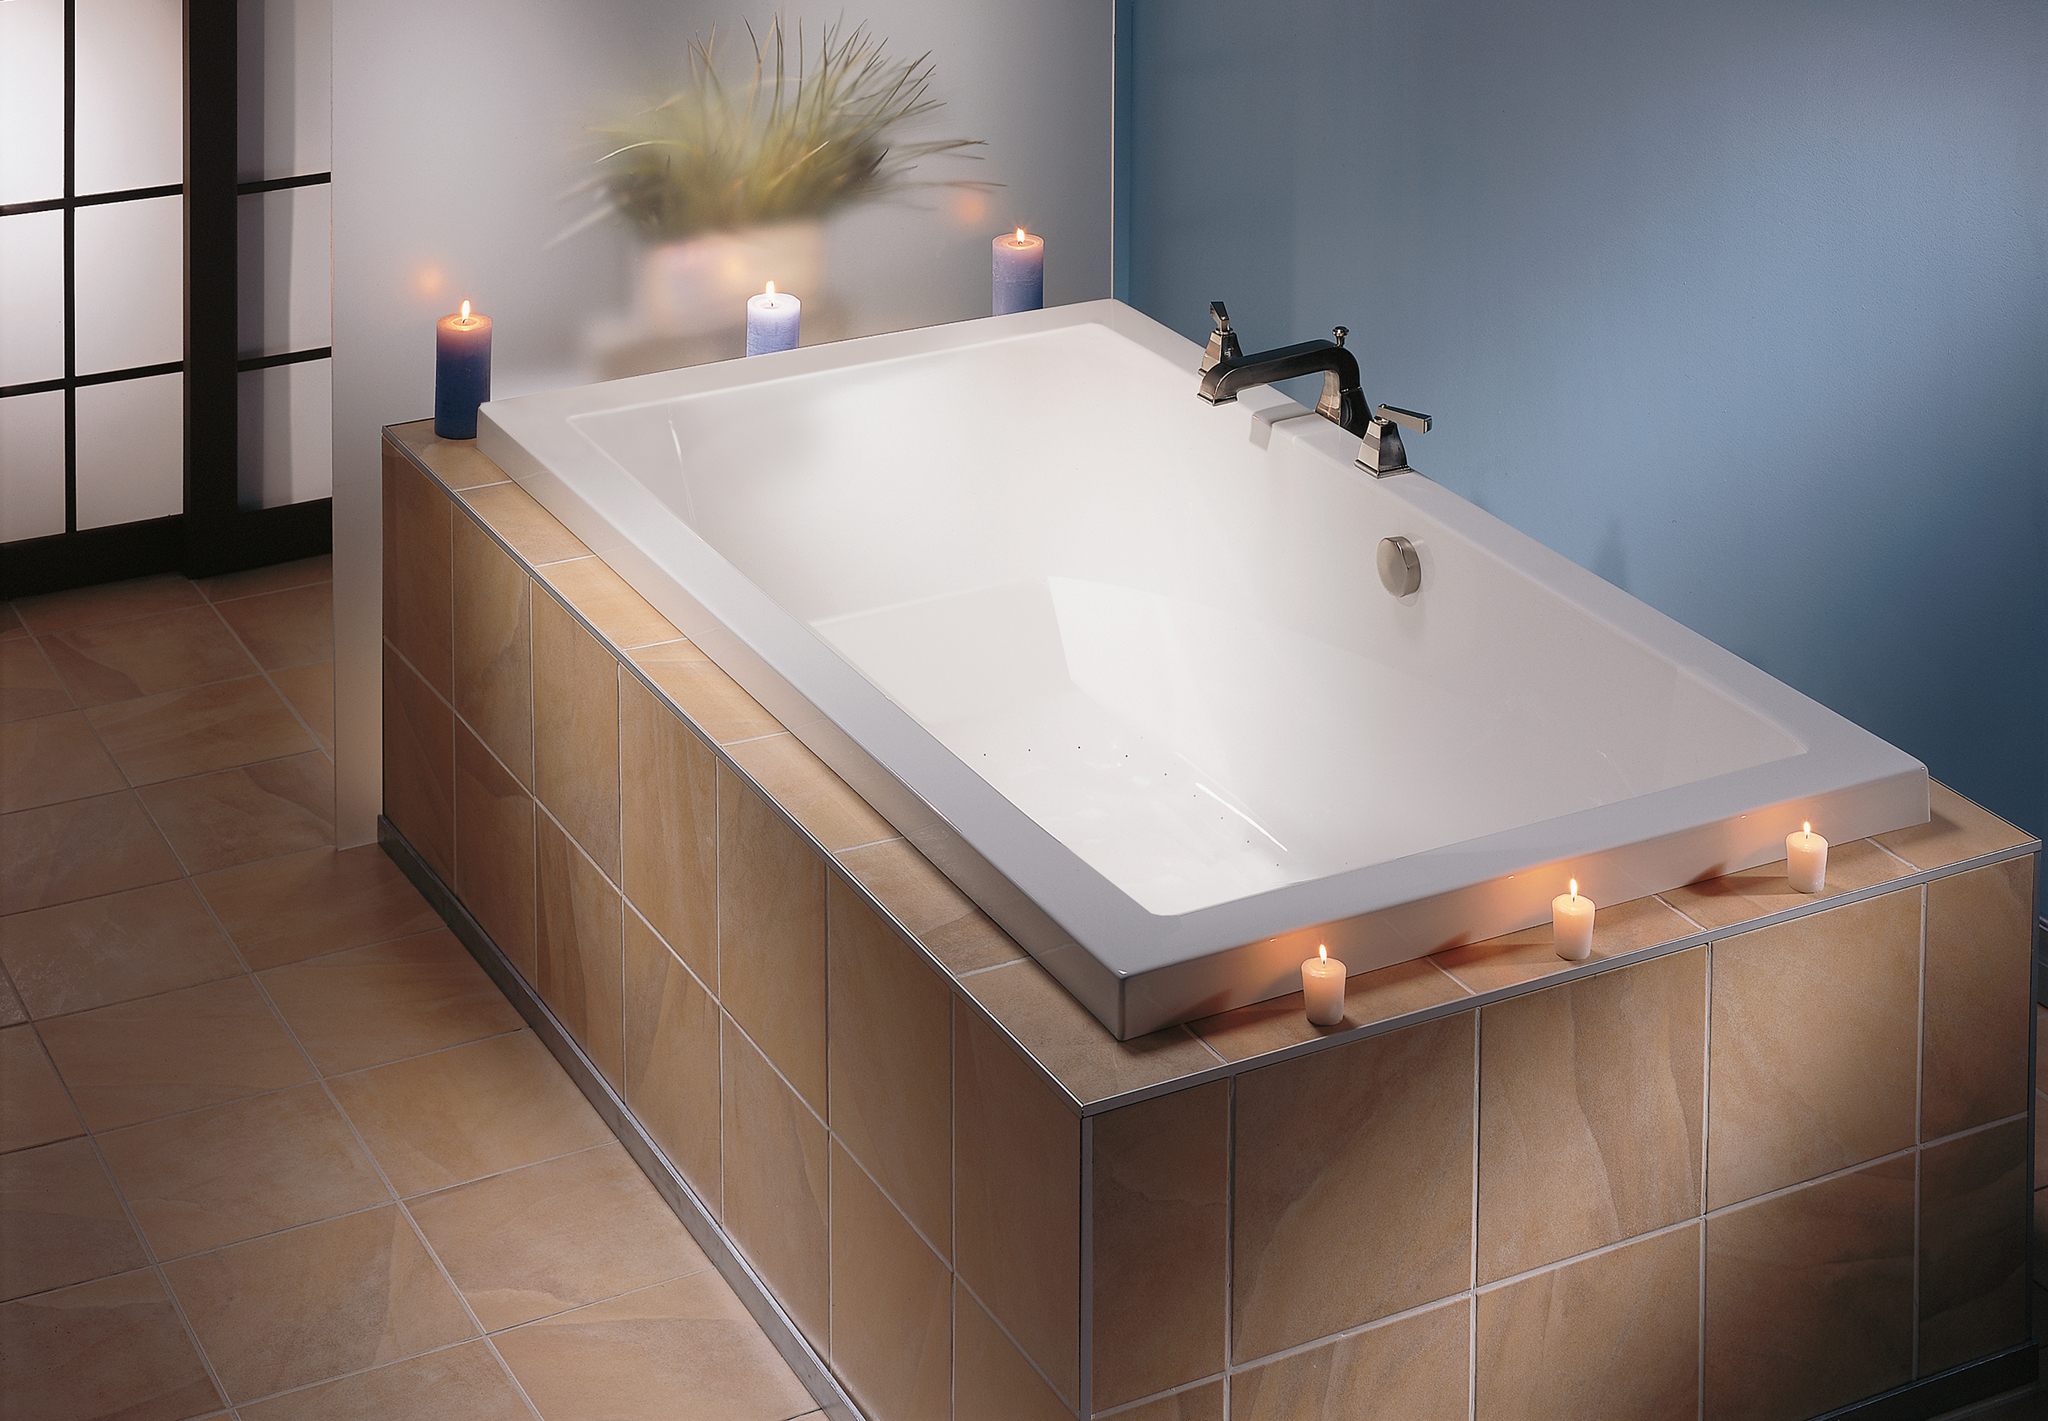 with bathtubs p hand store rectangular bathtub in drain piece sterling wall ft and alcove set tub accessory left white